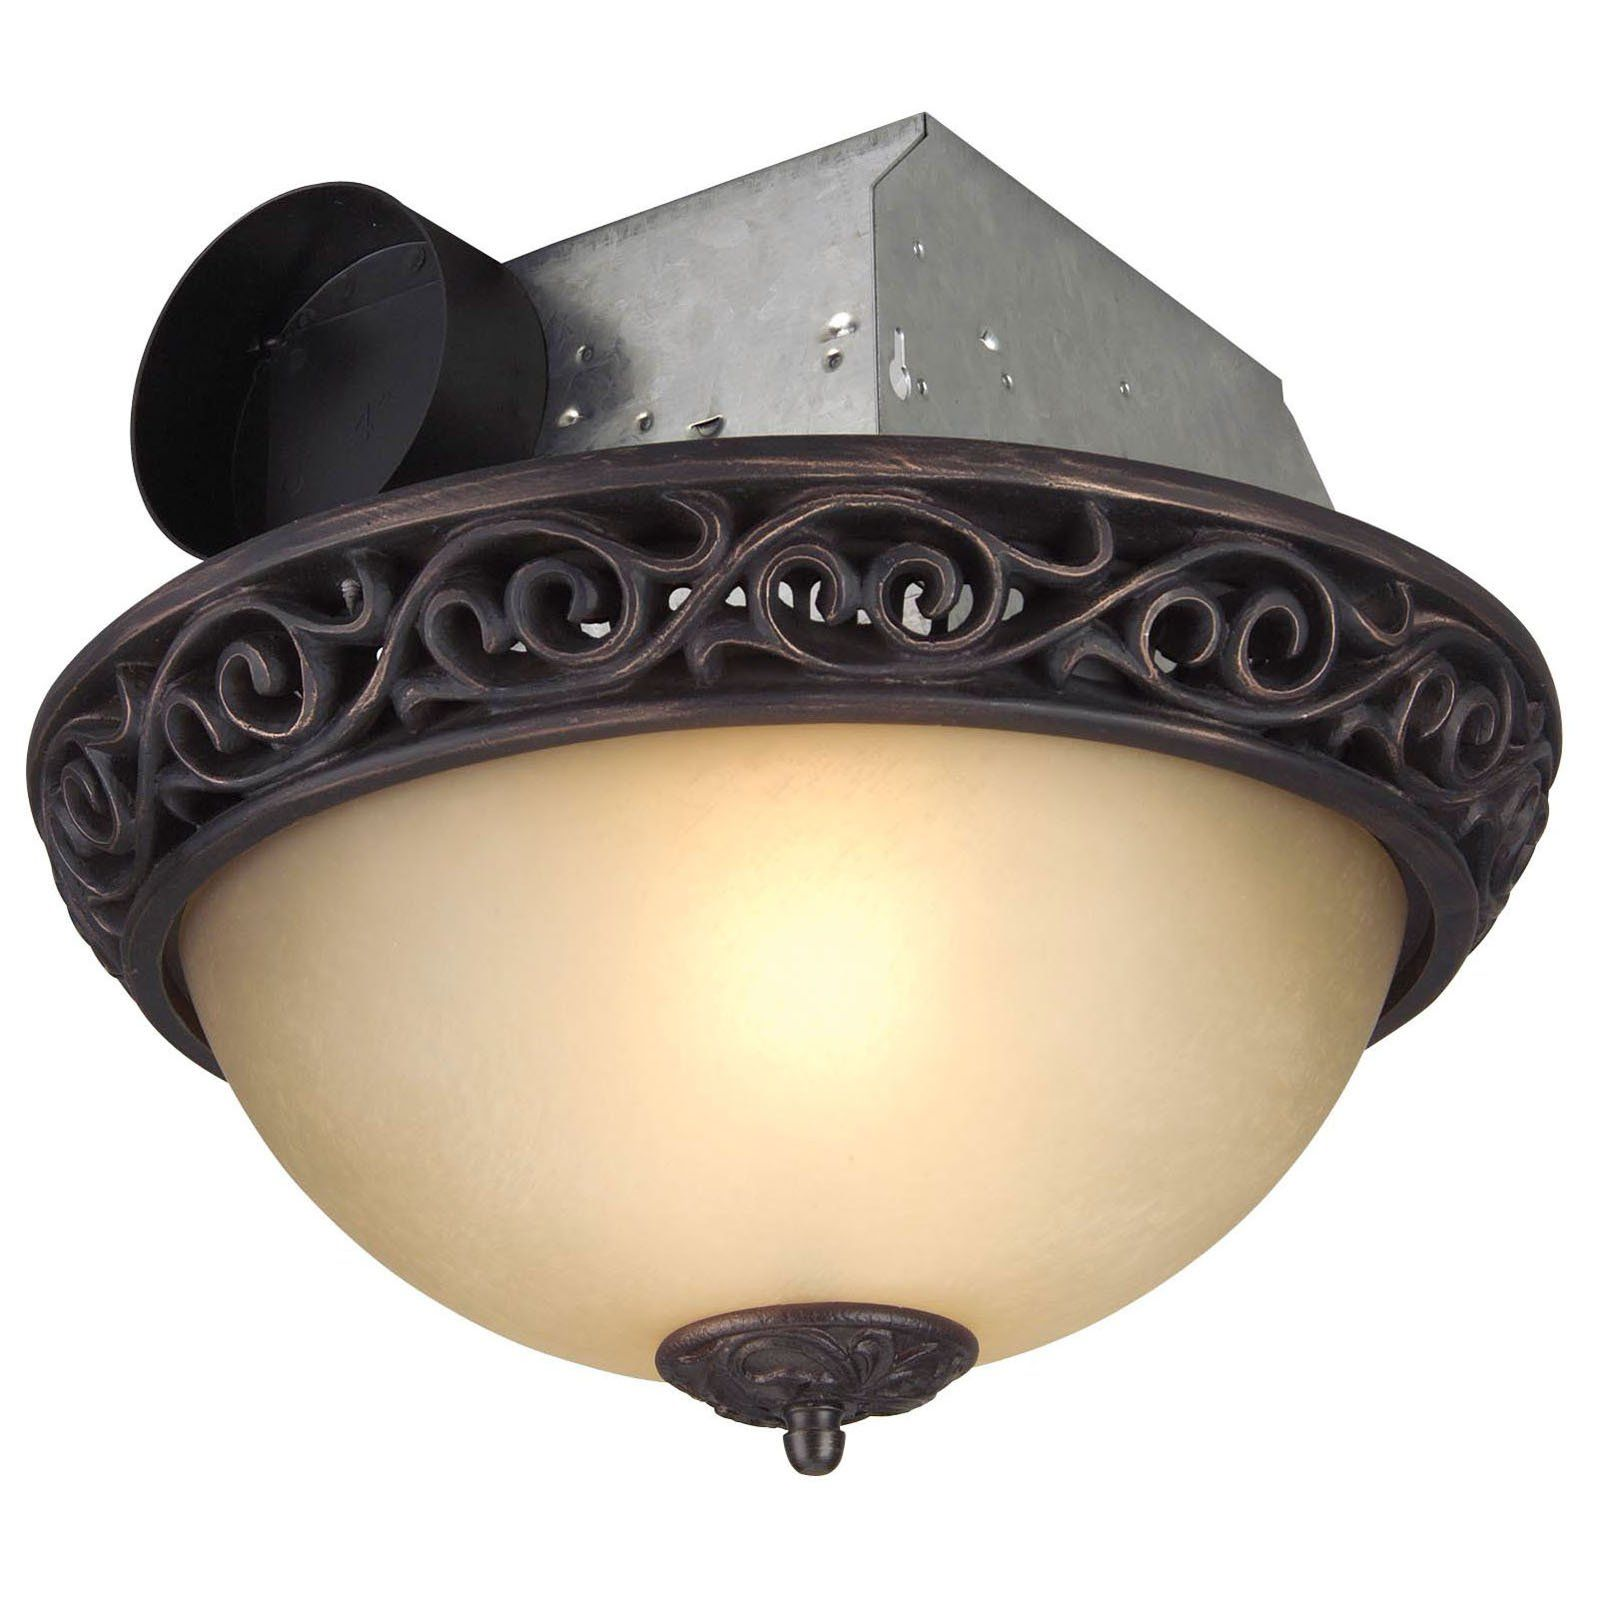 Craftmade Tfv70l Aiorb Bathroom Exhaust Fan Oil Rubbed Bronze From Hayneedle